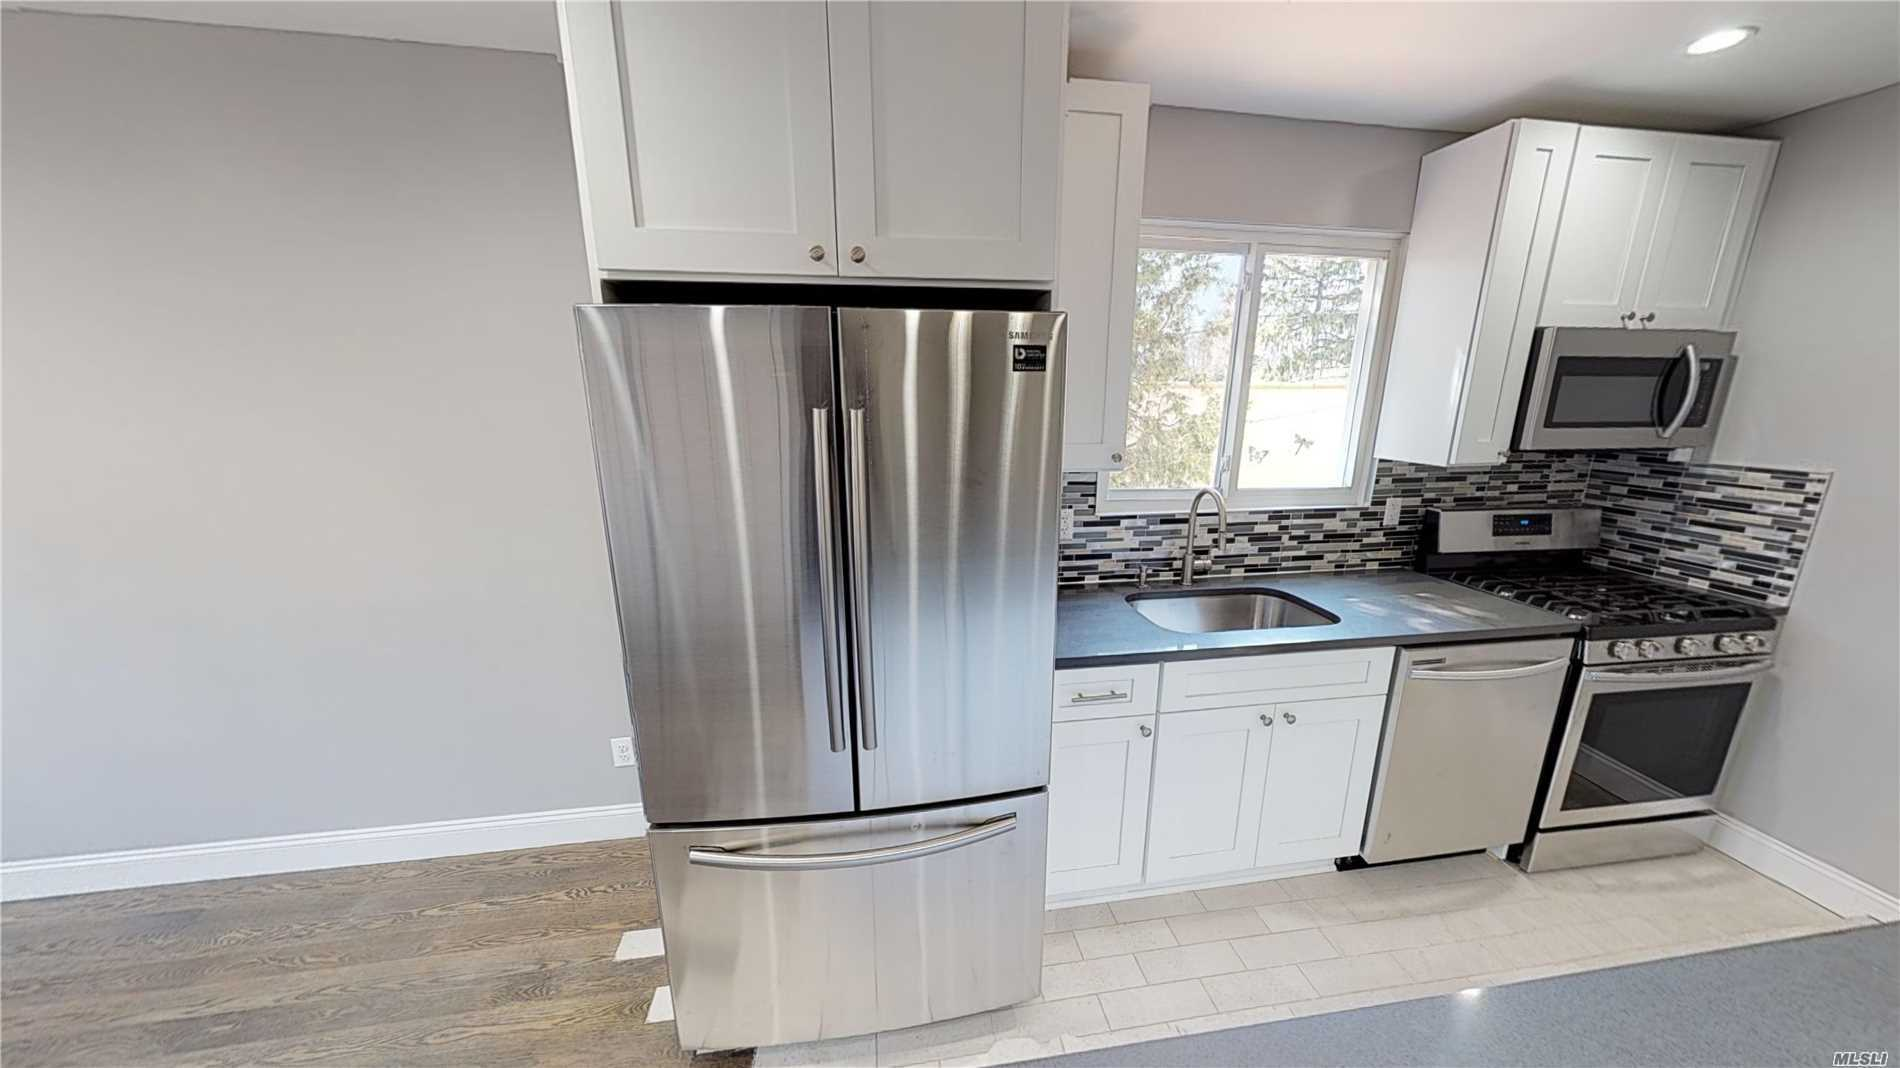 Completely Renovated, Beautiful, 2 Bedroom (Possible 3 Bedroom) 2 Bath Duplex with a Large Open Concept Kitchen, Private Oversized Yard and Plenty of Storage..... Quiet street. Close to all!